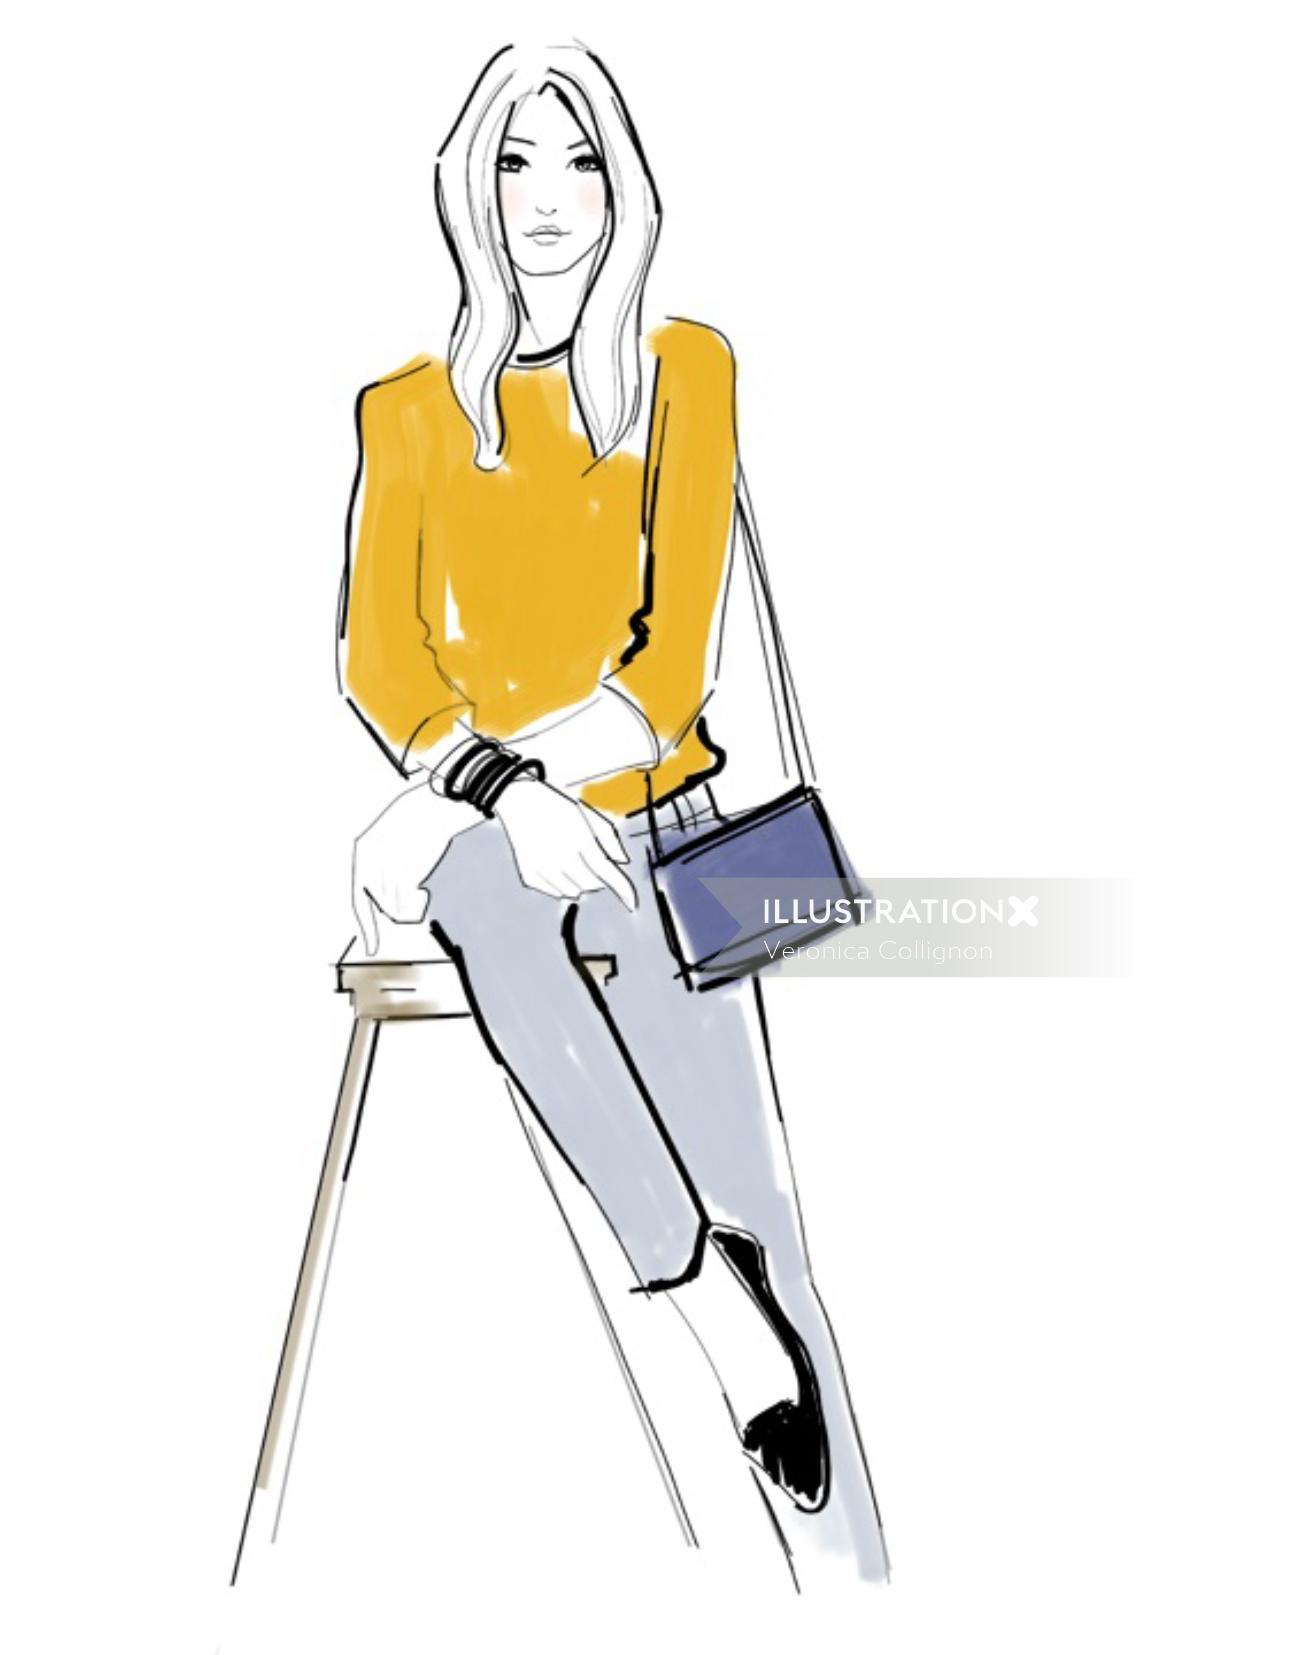 An illustration of a woman sitting on table